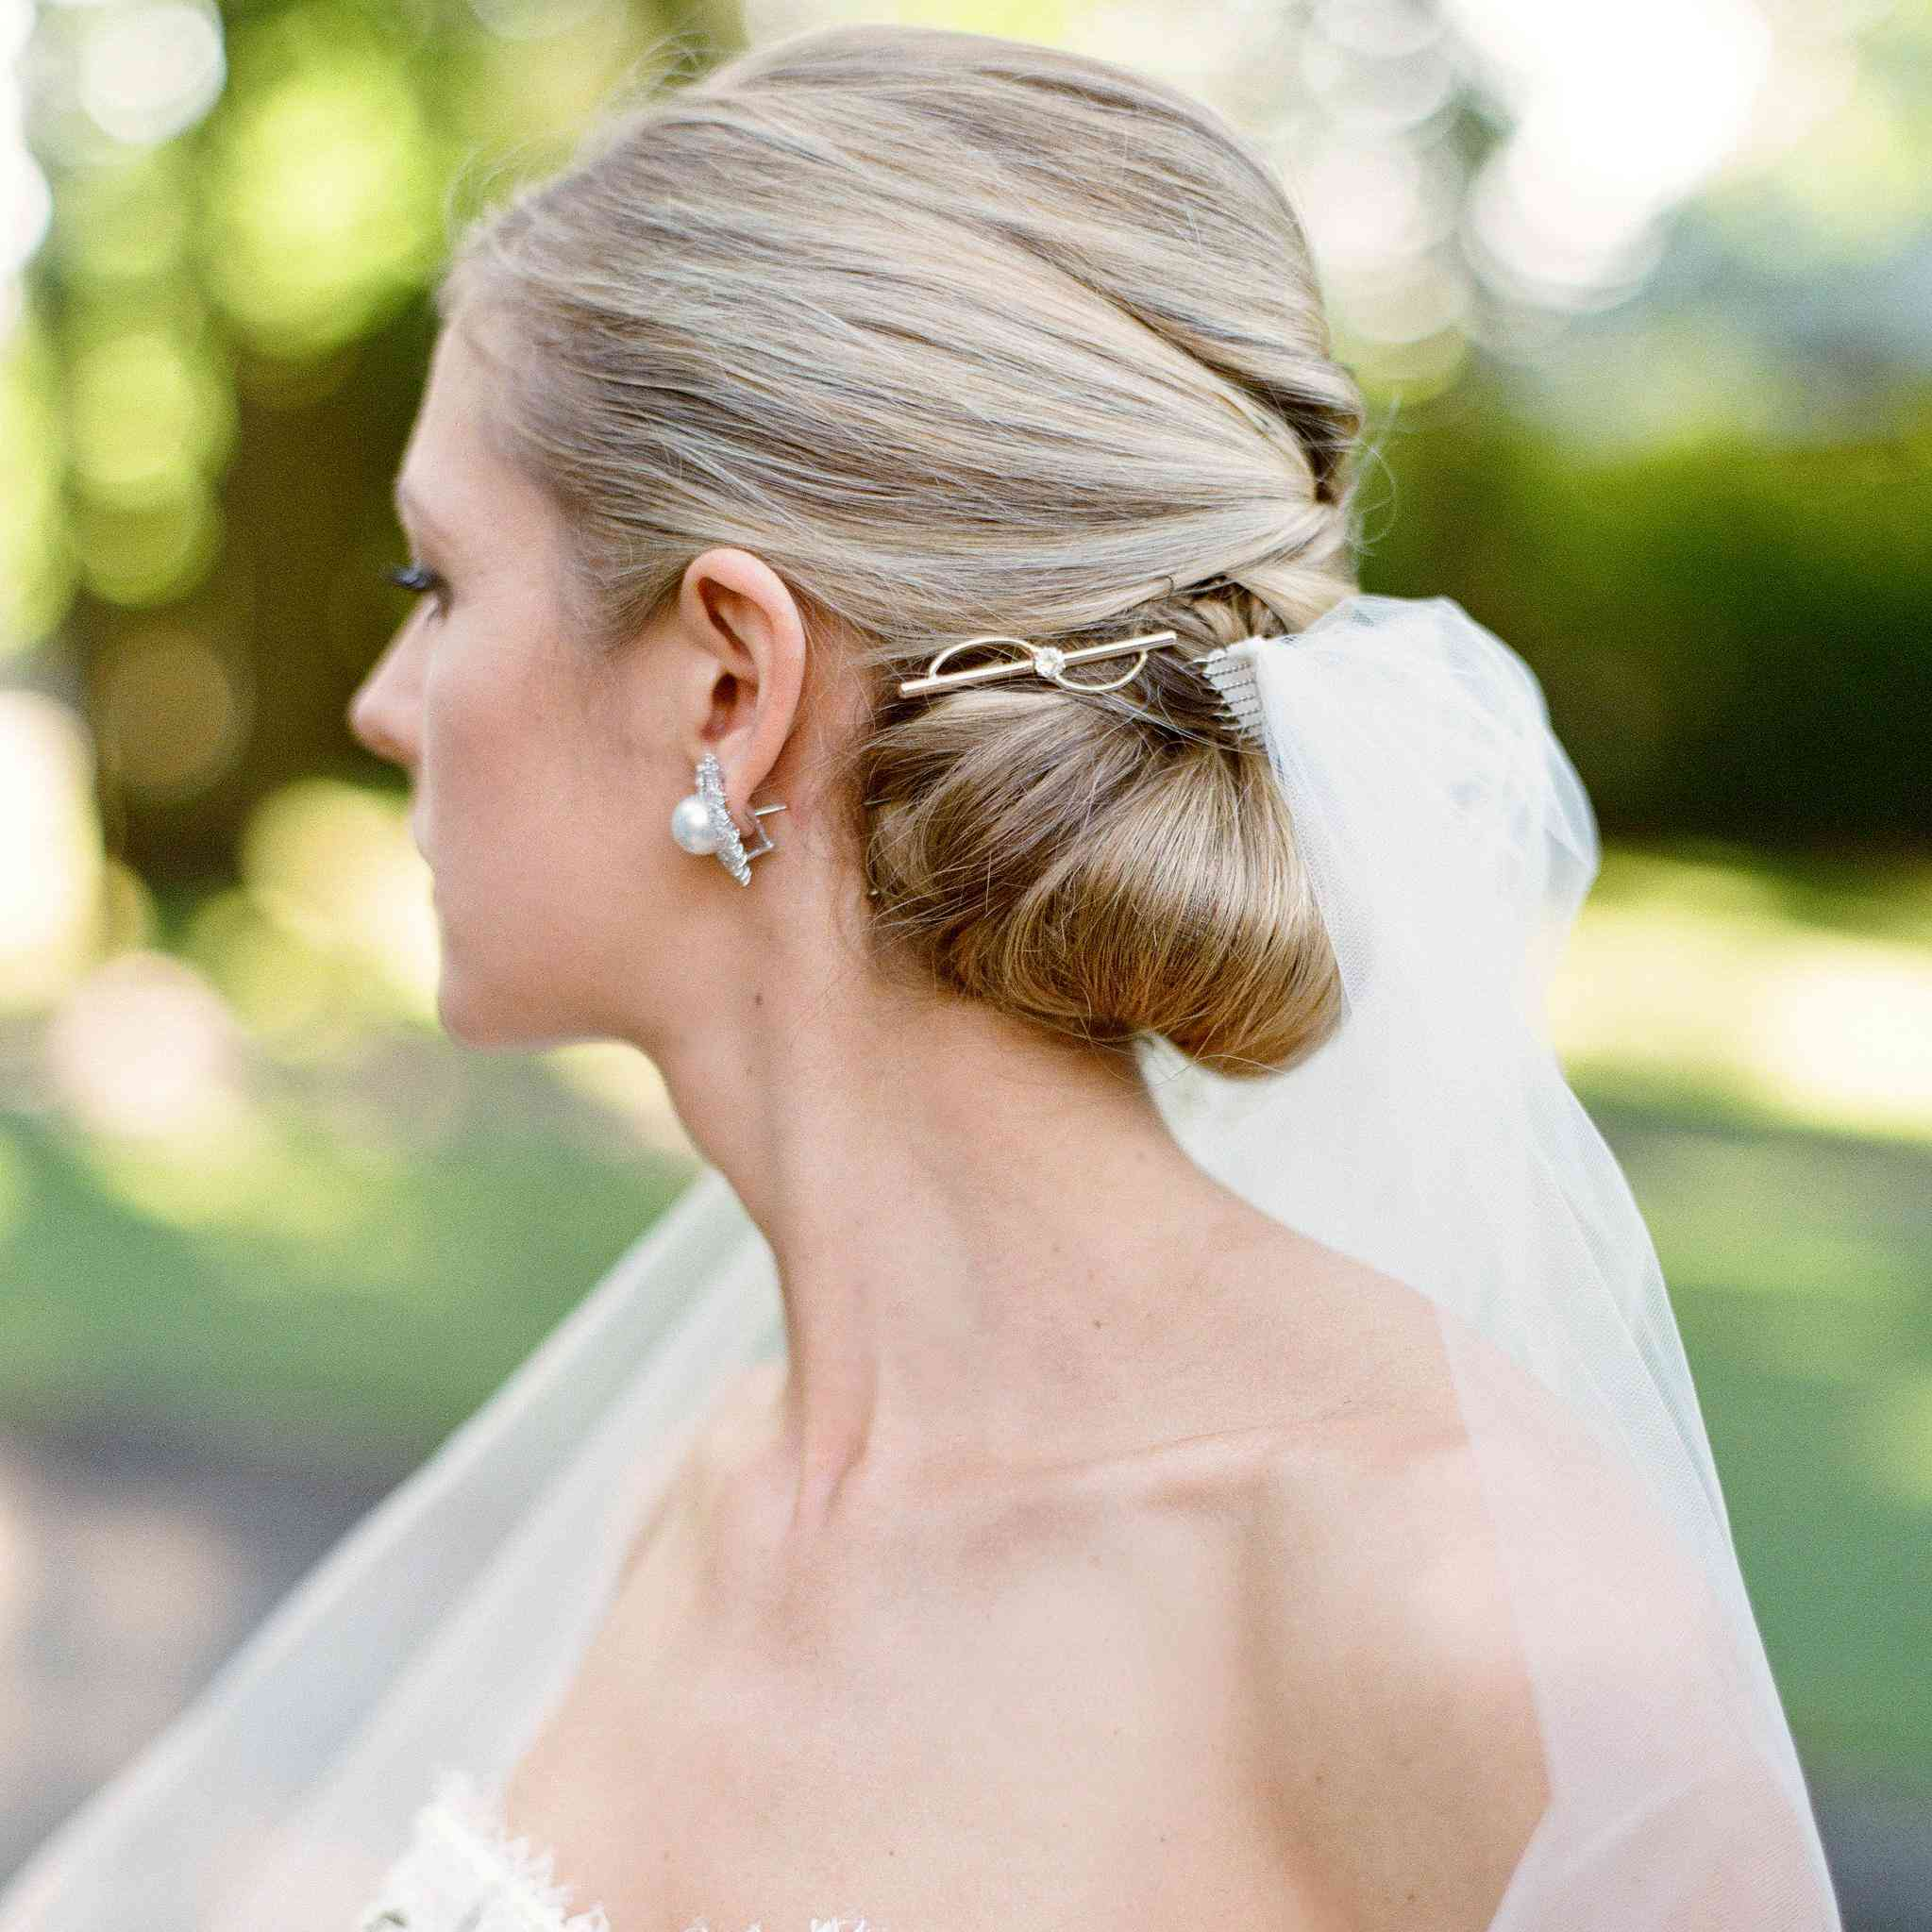 7588fbe4d2 Bridal Barrettes Are the New Wedding Hair Accessory Trend You Need ...